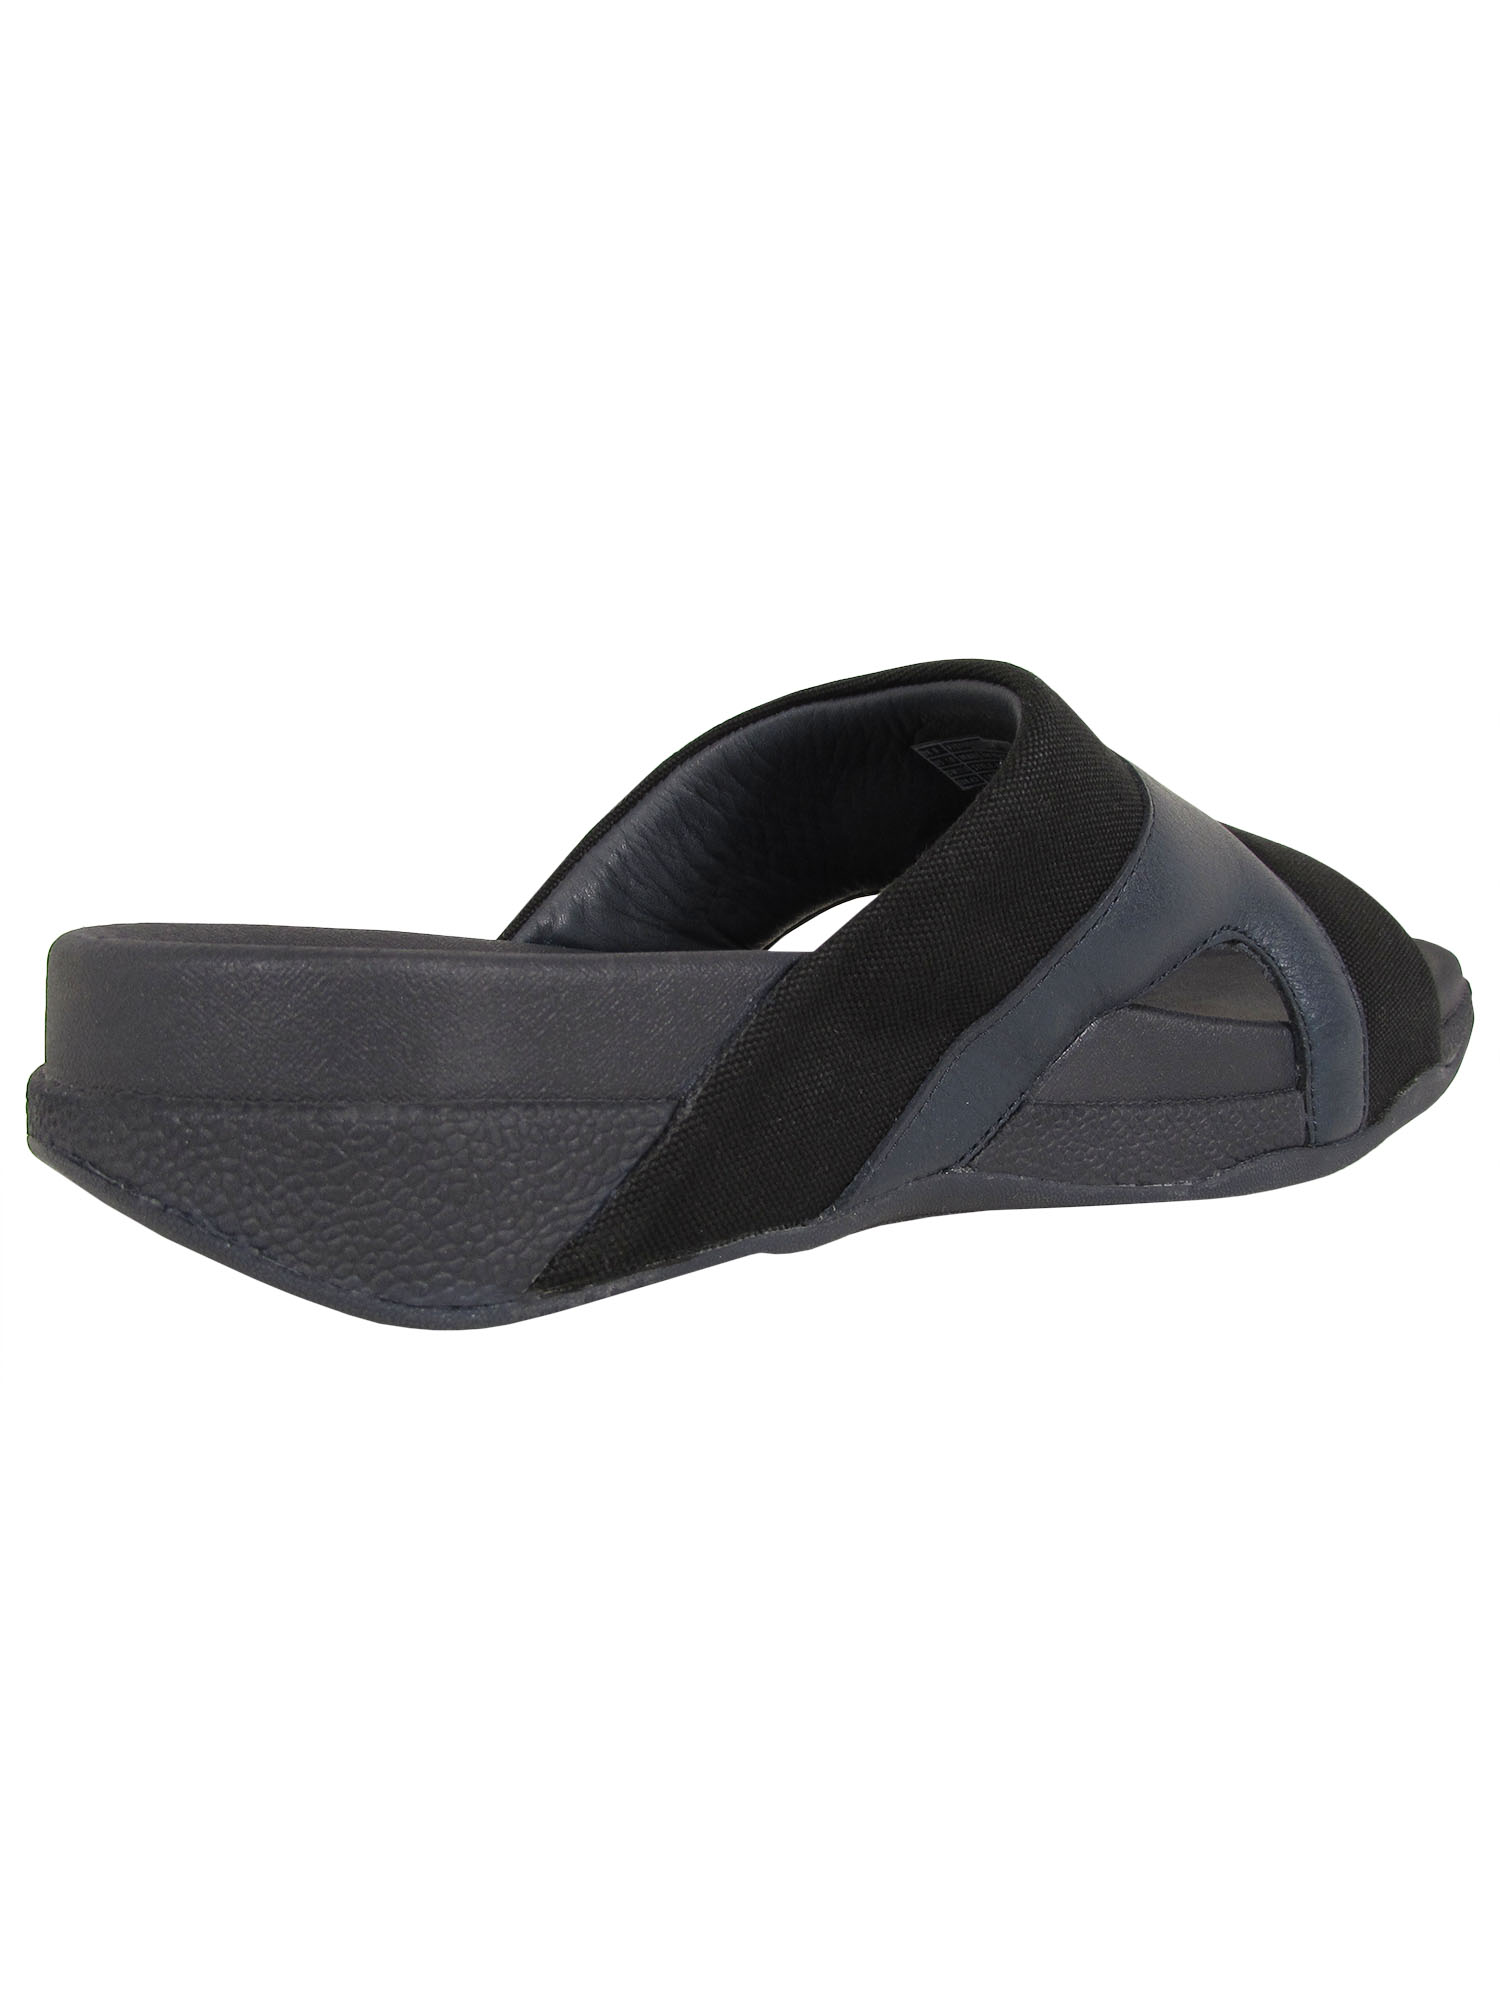 thumbnail 7 - Fitflop-Mens-Freeway-Leather-Canvas-Pool-Slide